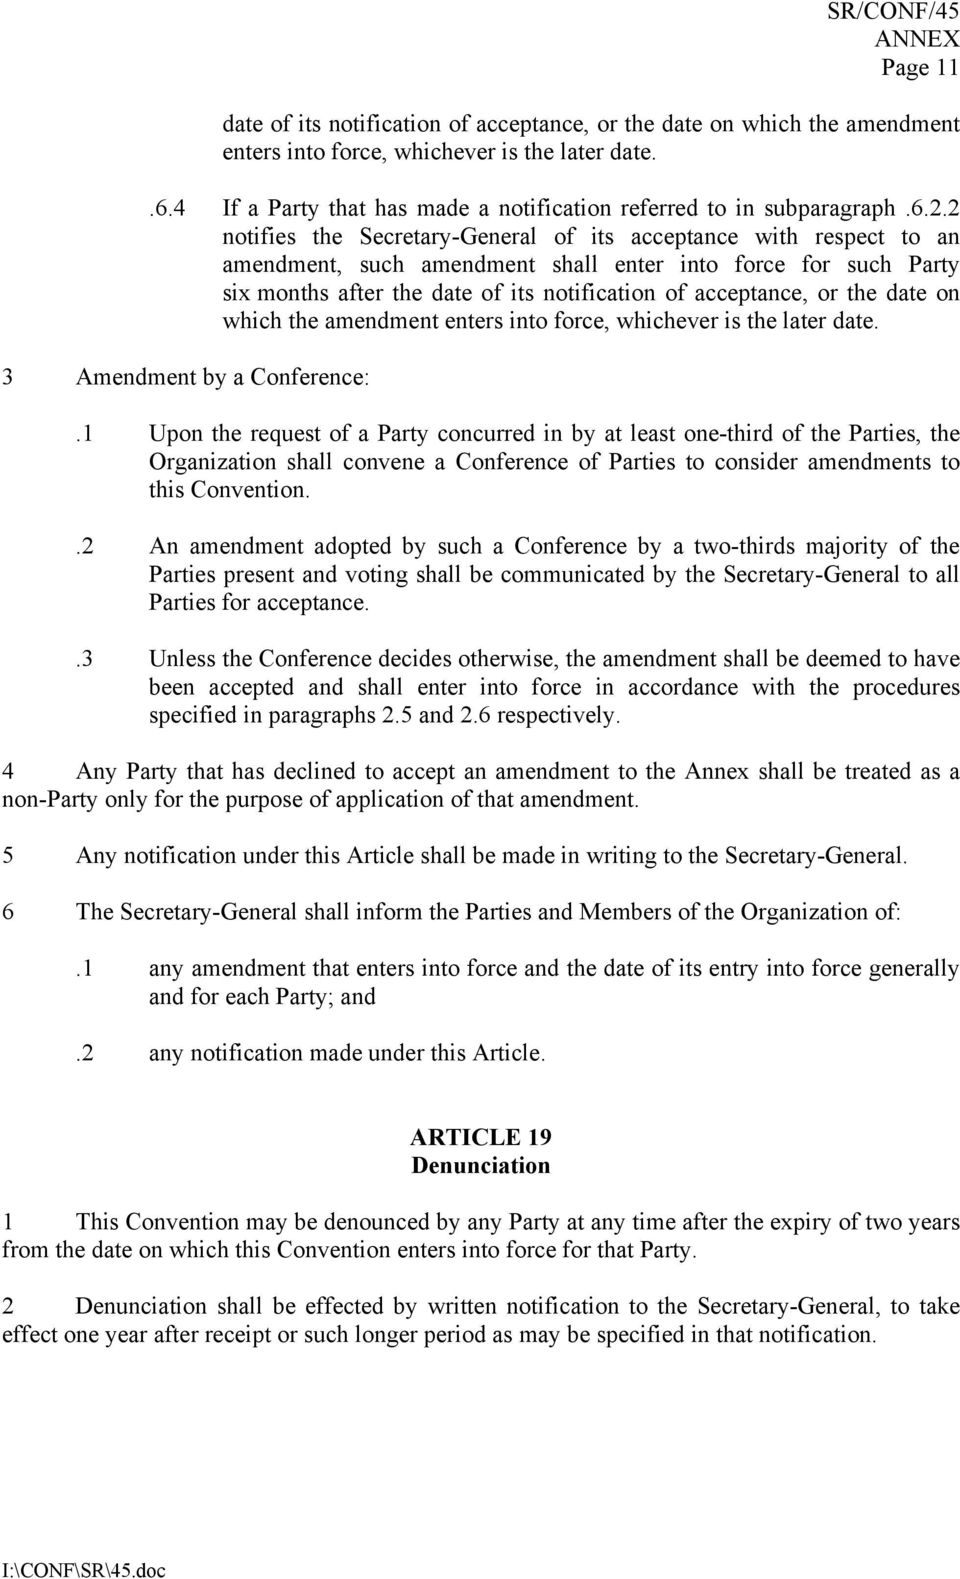 2 notifies the Secretary-General of its acceptance with respect to an amendment, such amendment shall enter into force for such Party six months after the date of its notification of acceptance, or